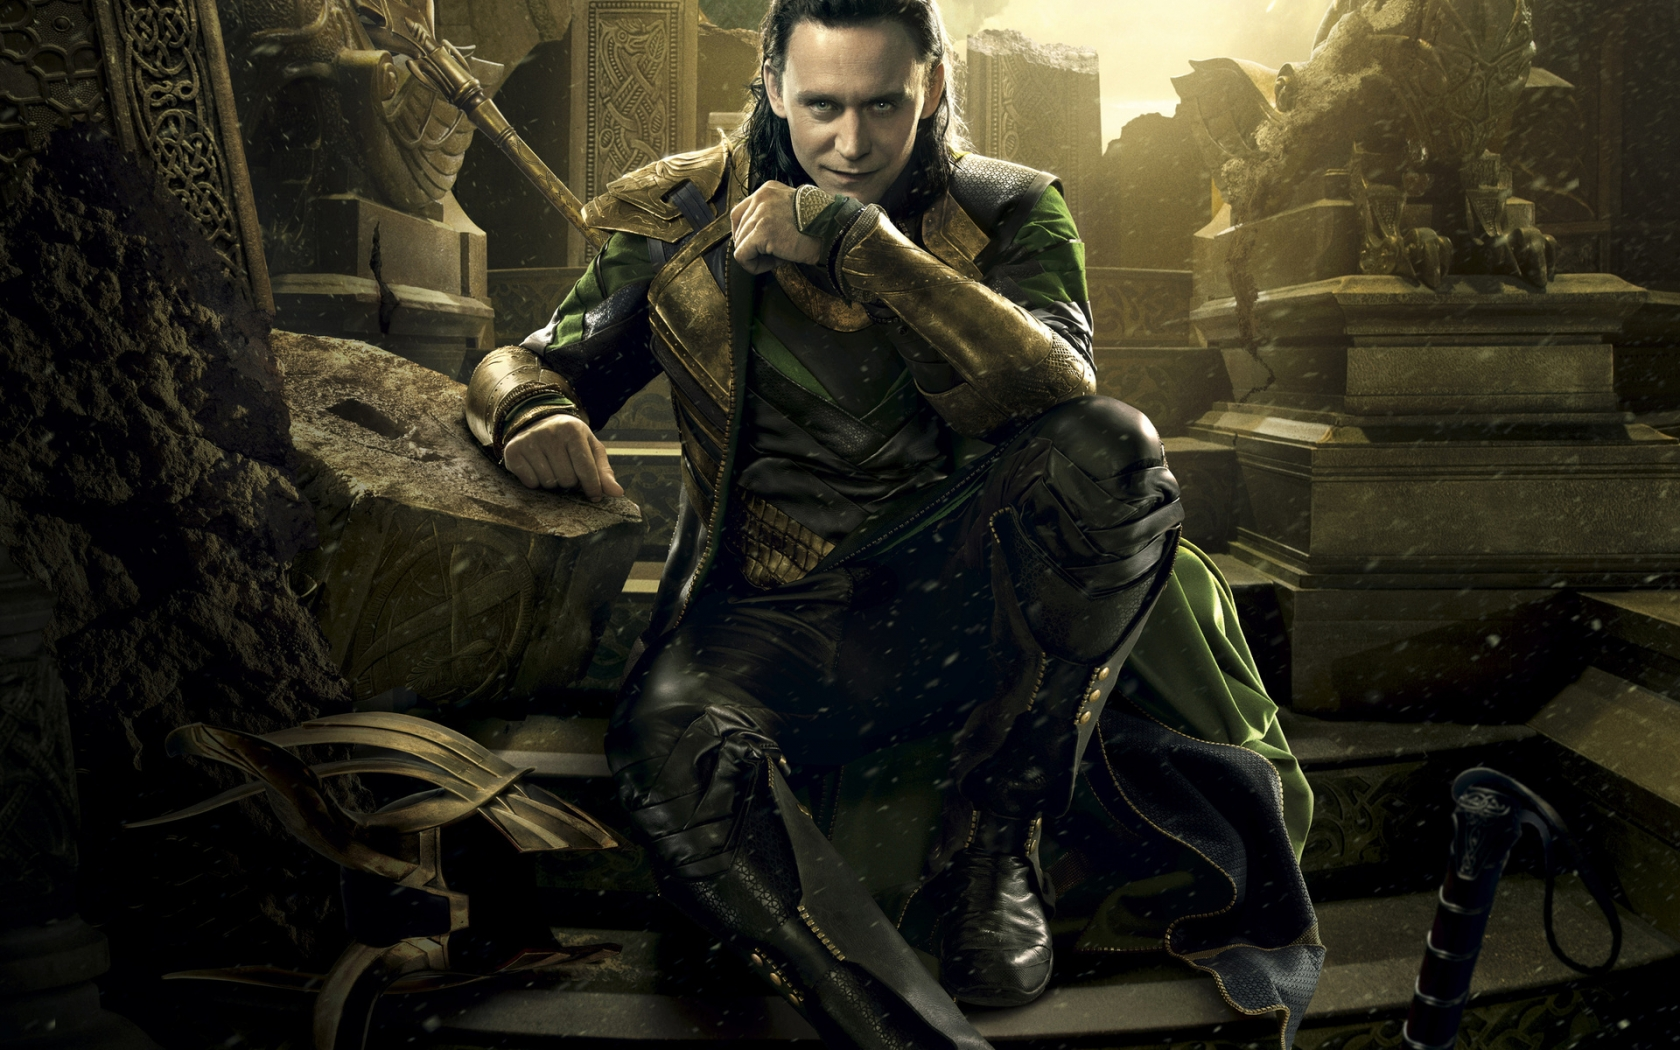 Loki Pose for 1680 x 1050 widescreen resolution